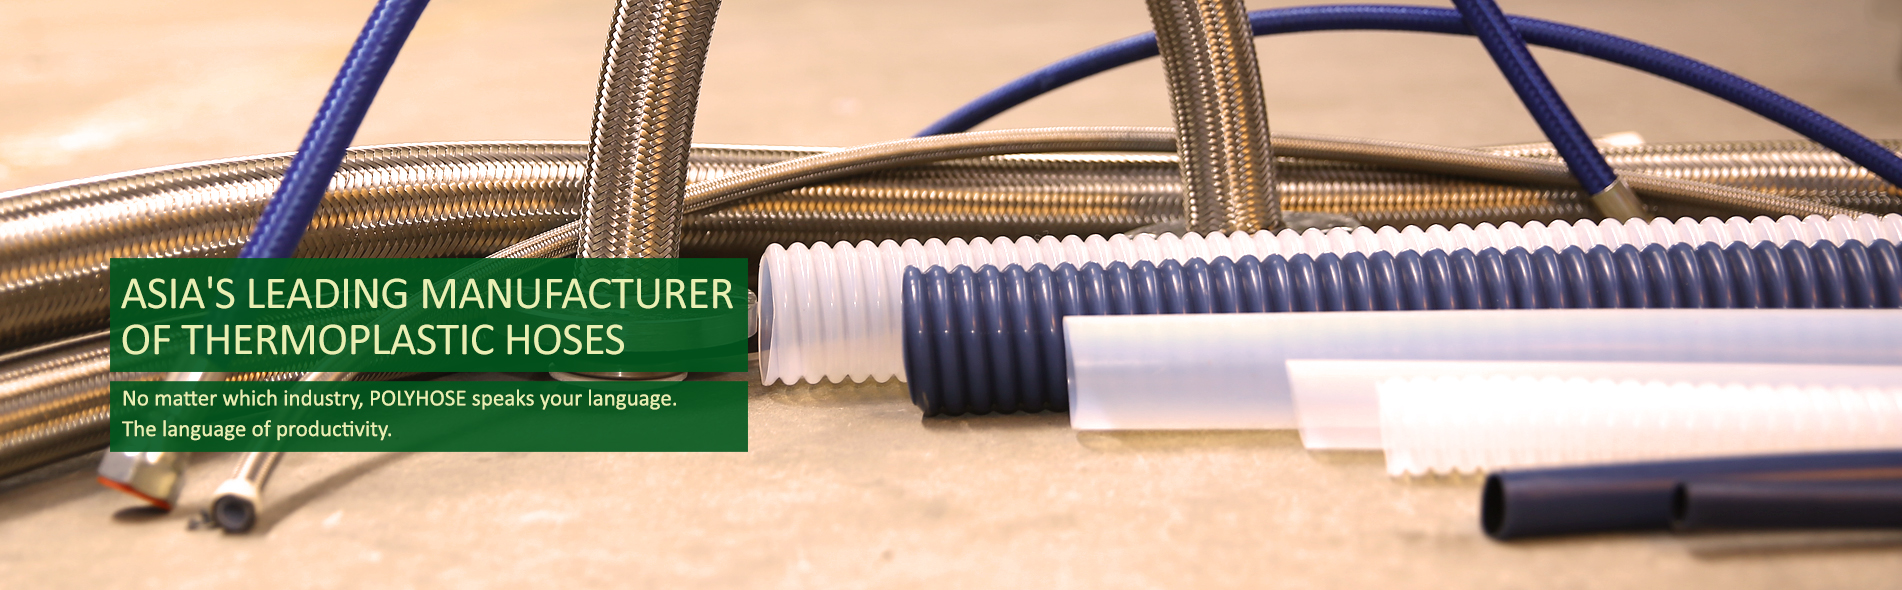 asia's leading manufacturer of thermoplastic hoses